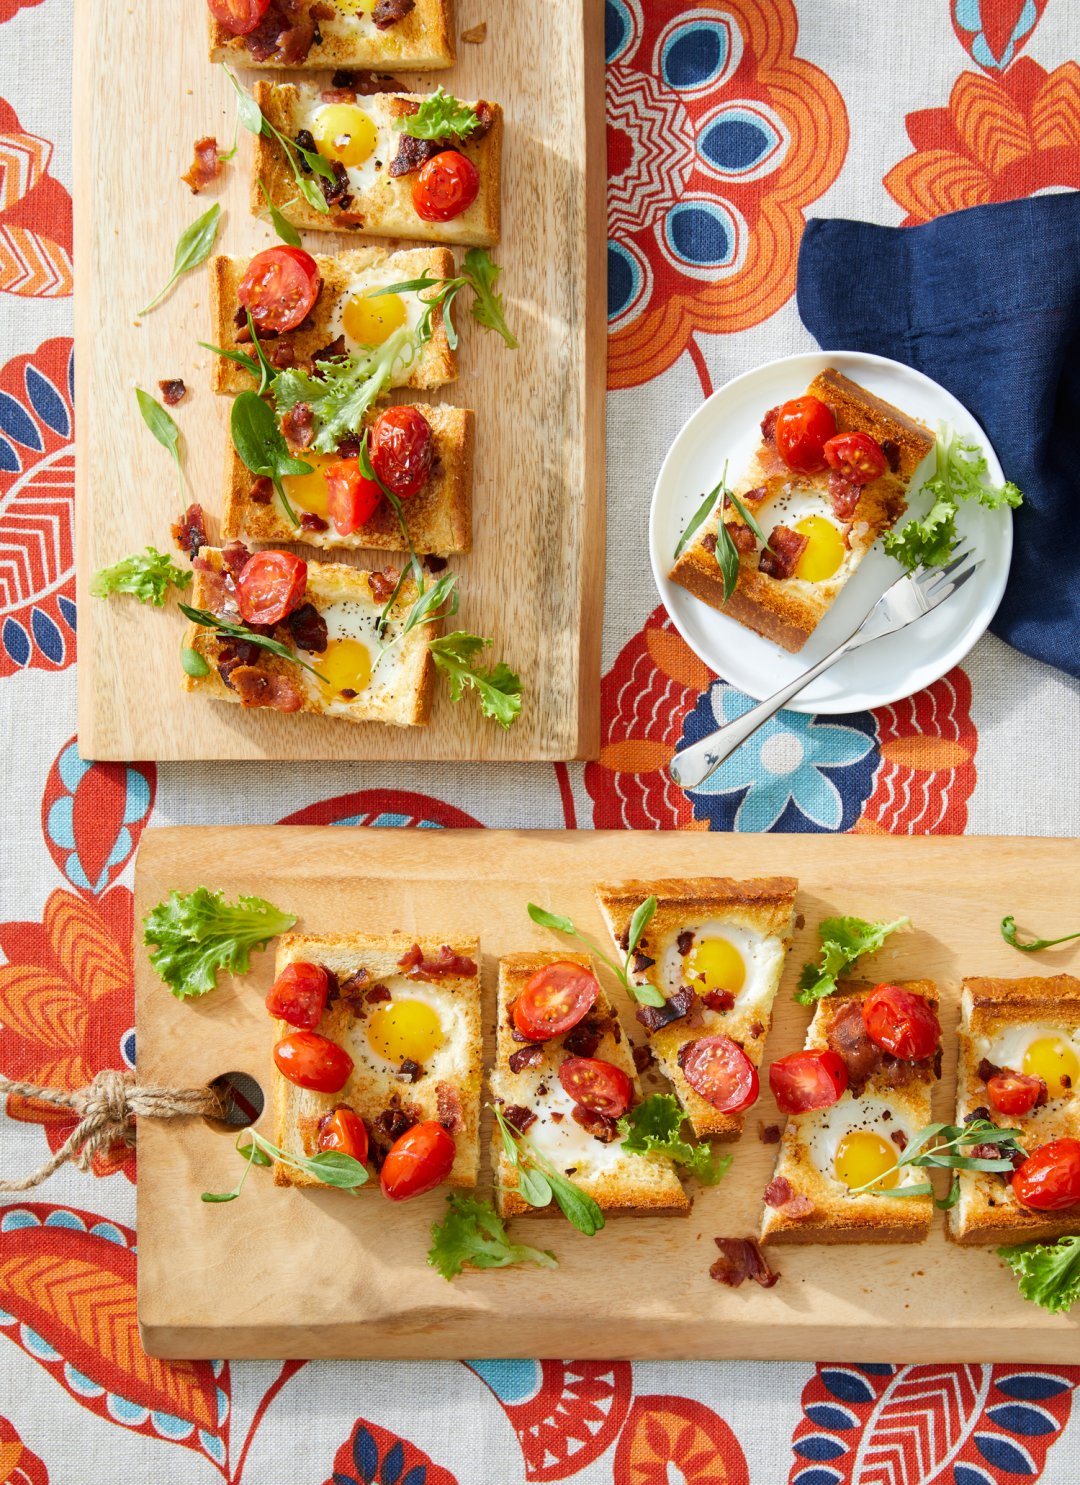 Open-faced tomato, egg and bacon tartine on a sliced baguette on two wood serving boards